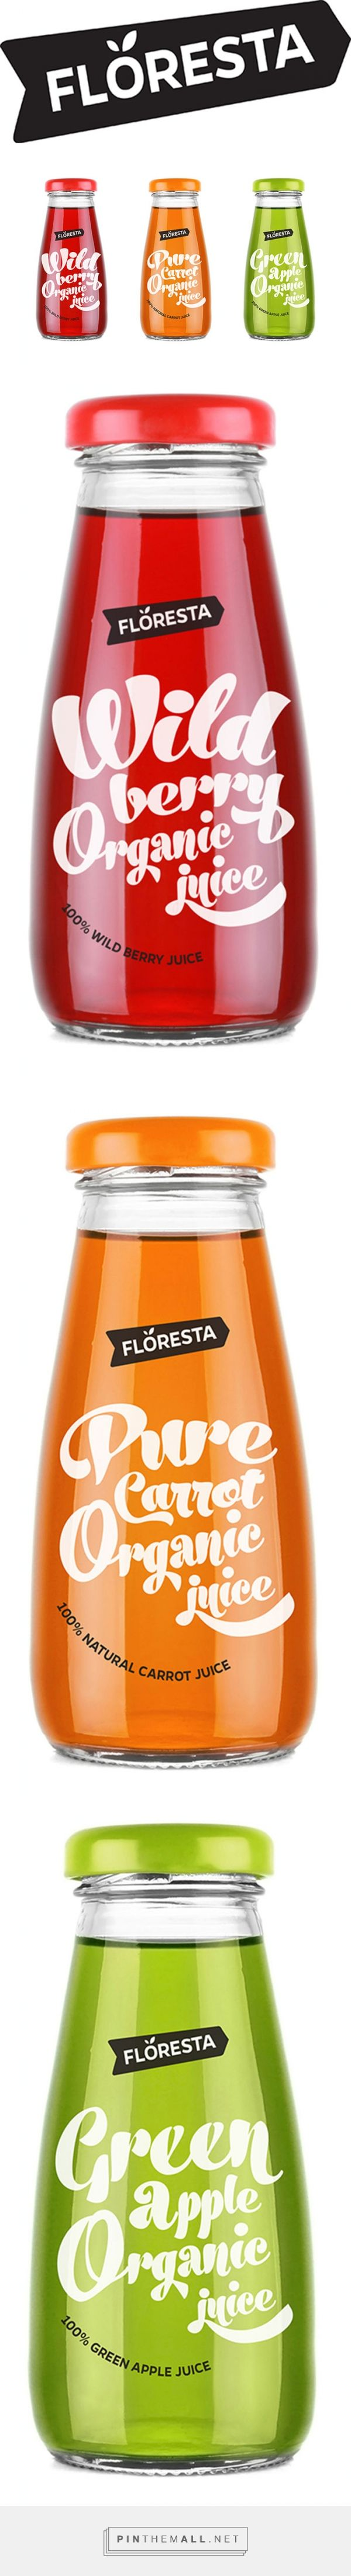 Floresta Juices designed by Yuliana Pandelieva. Pin curated by #SFields99 #packaging #design